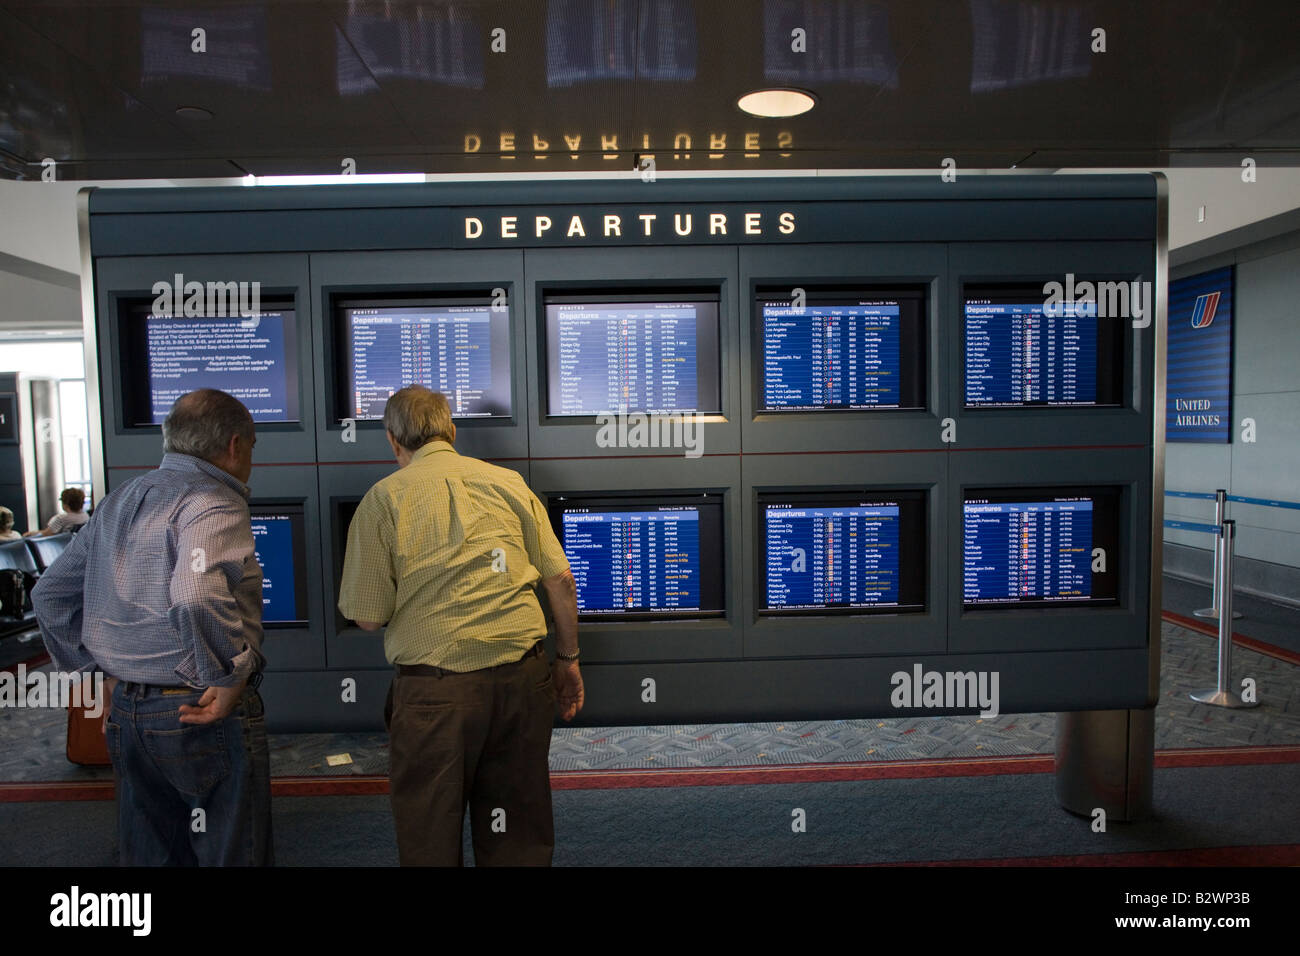 passengers looking at flight schedule video terminals, Denver International Airport, Colorado, USA - Stock Image